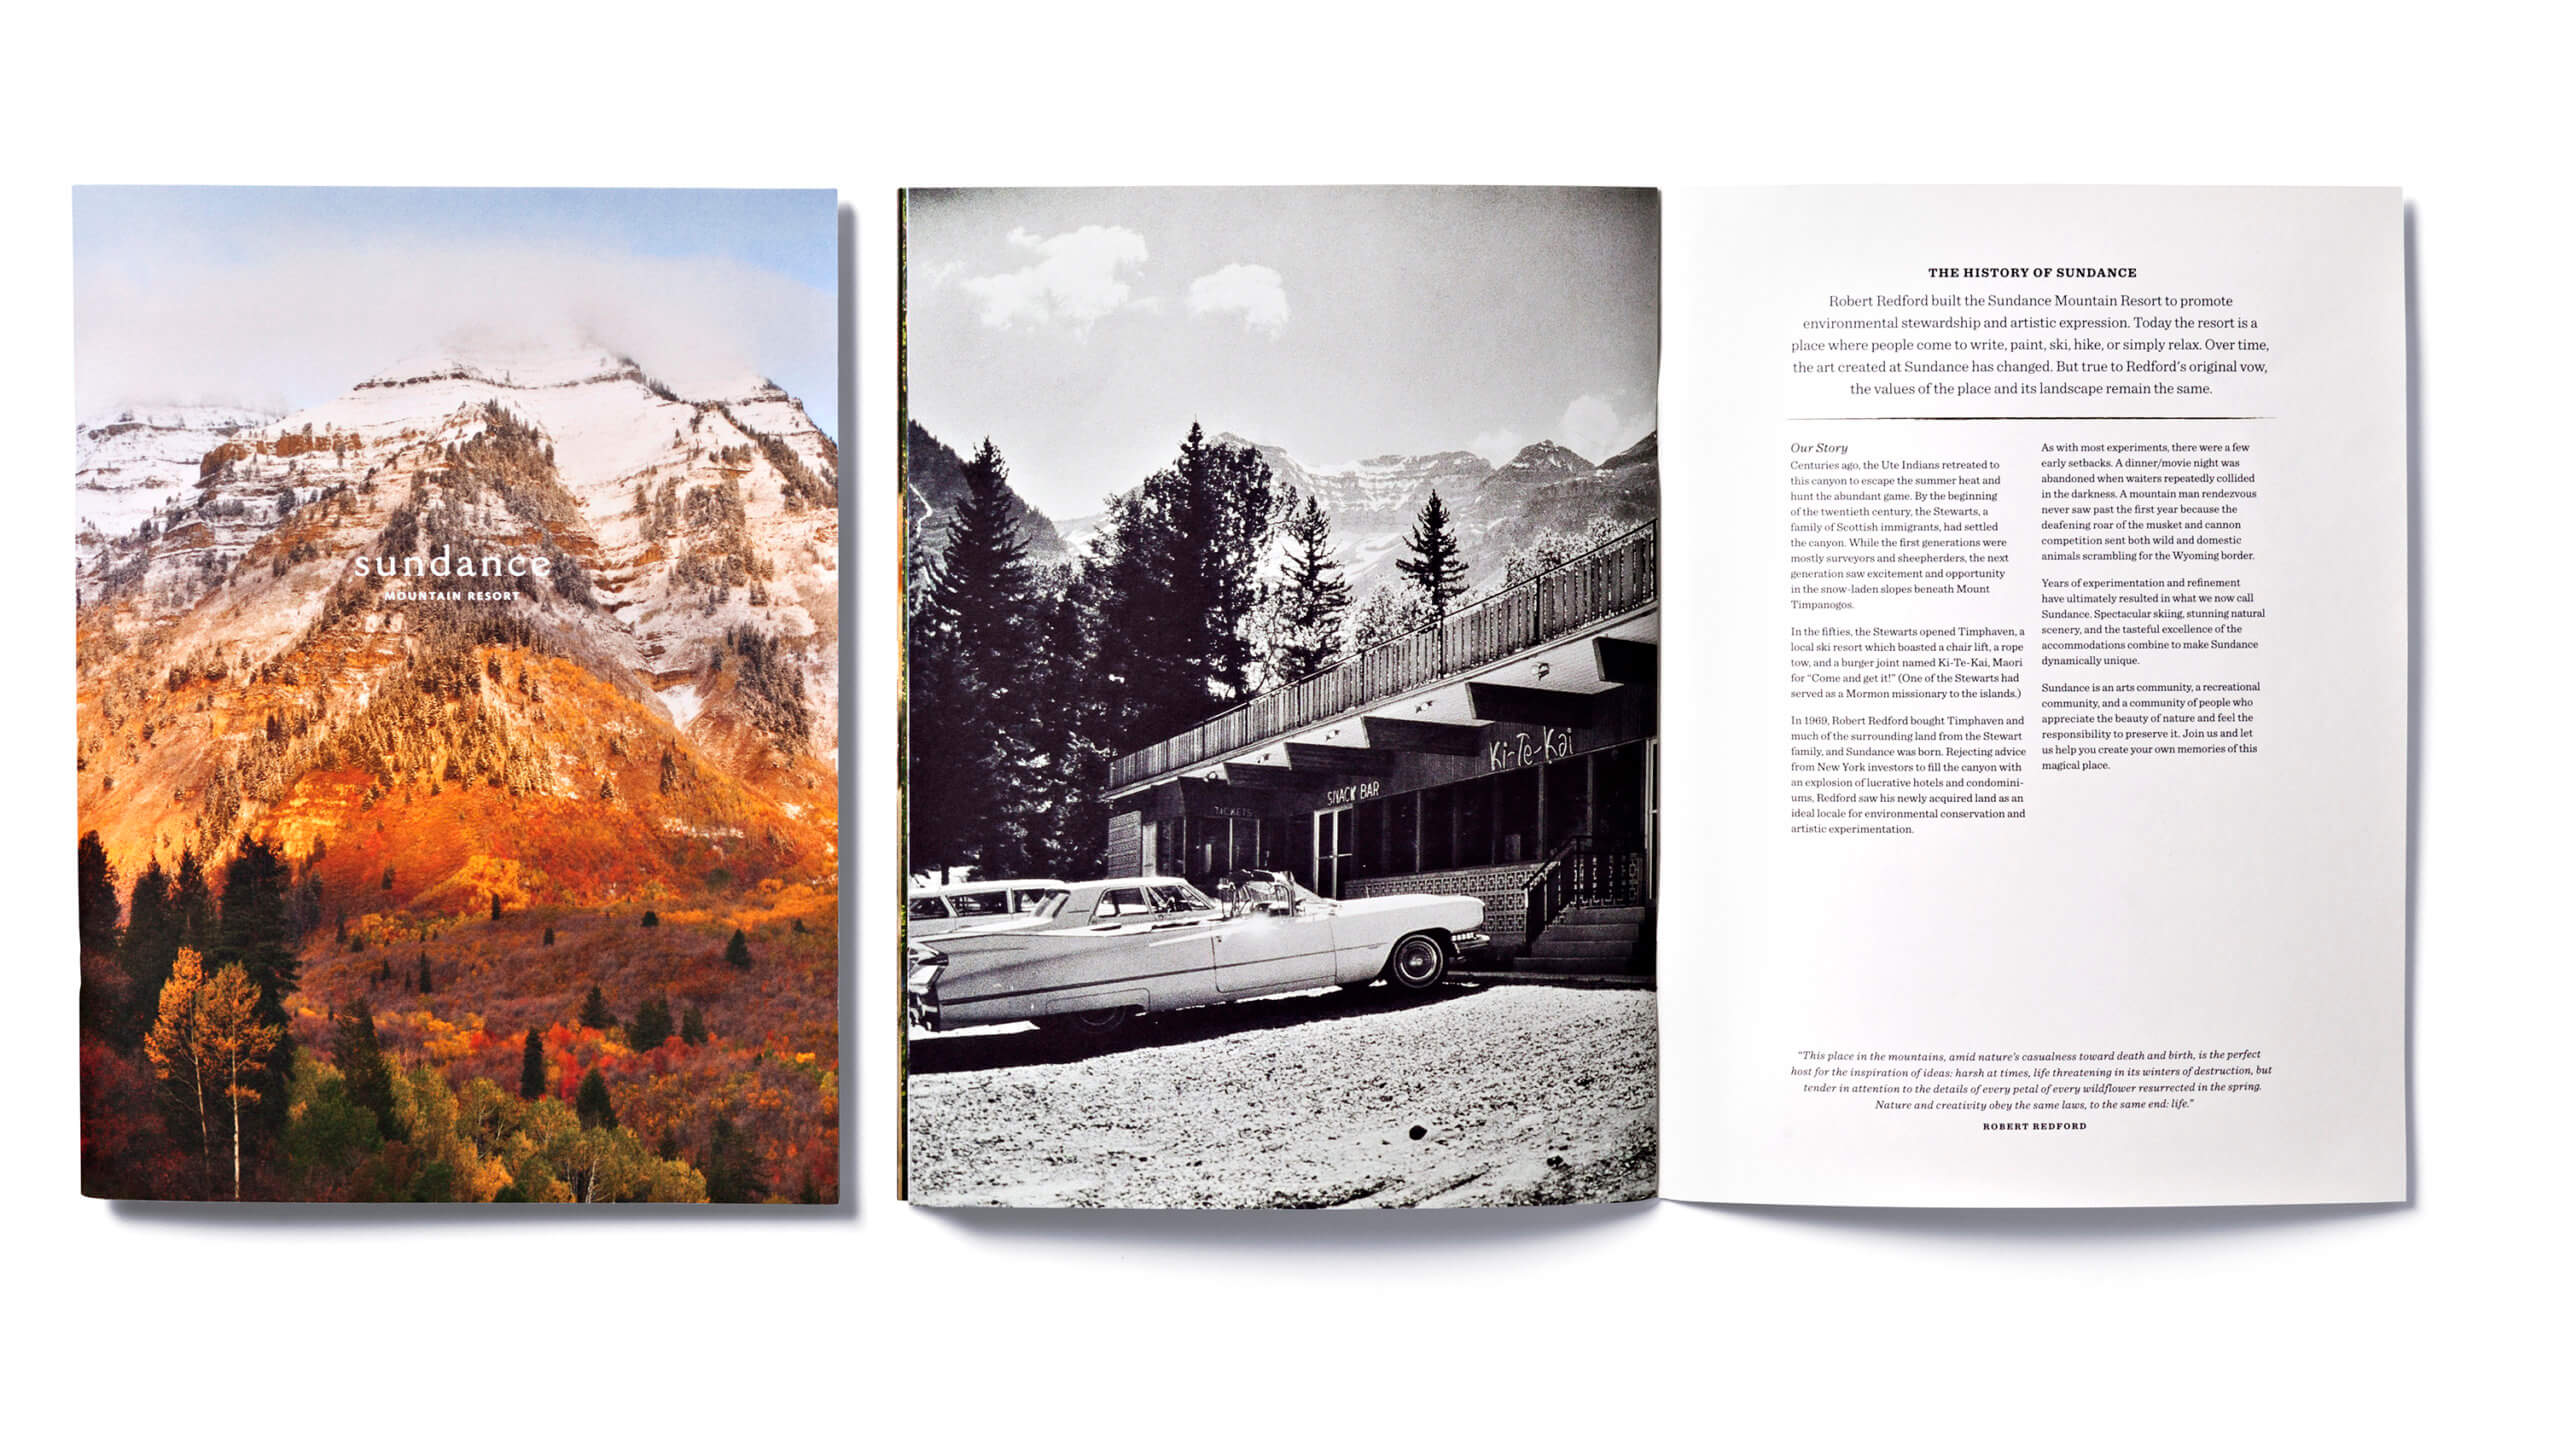 Sundance brochure cover showing mountain and open spread featuring black and white photo of car